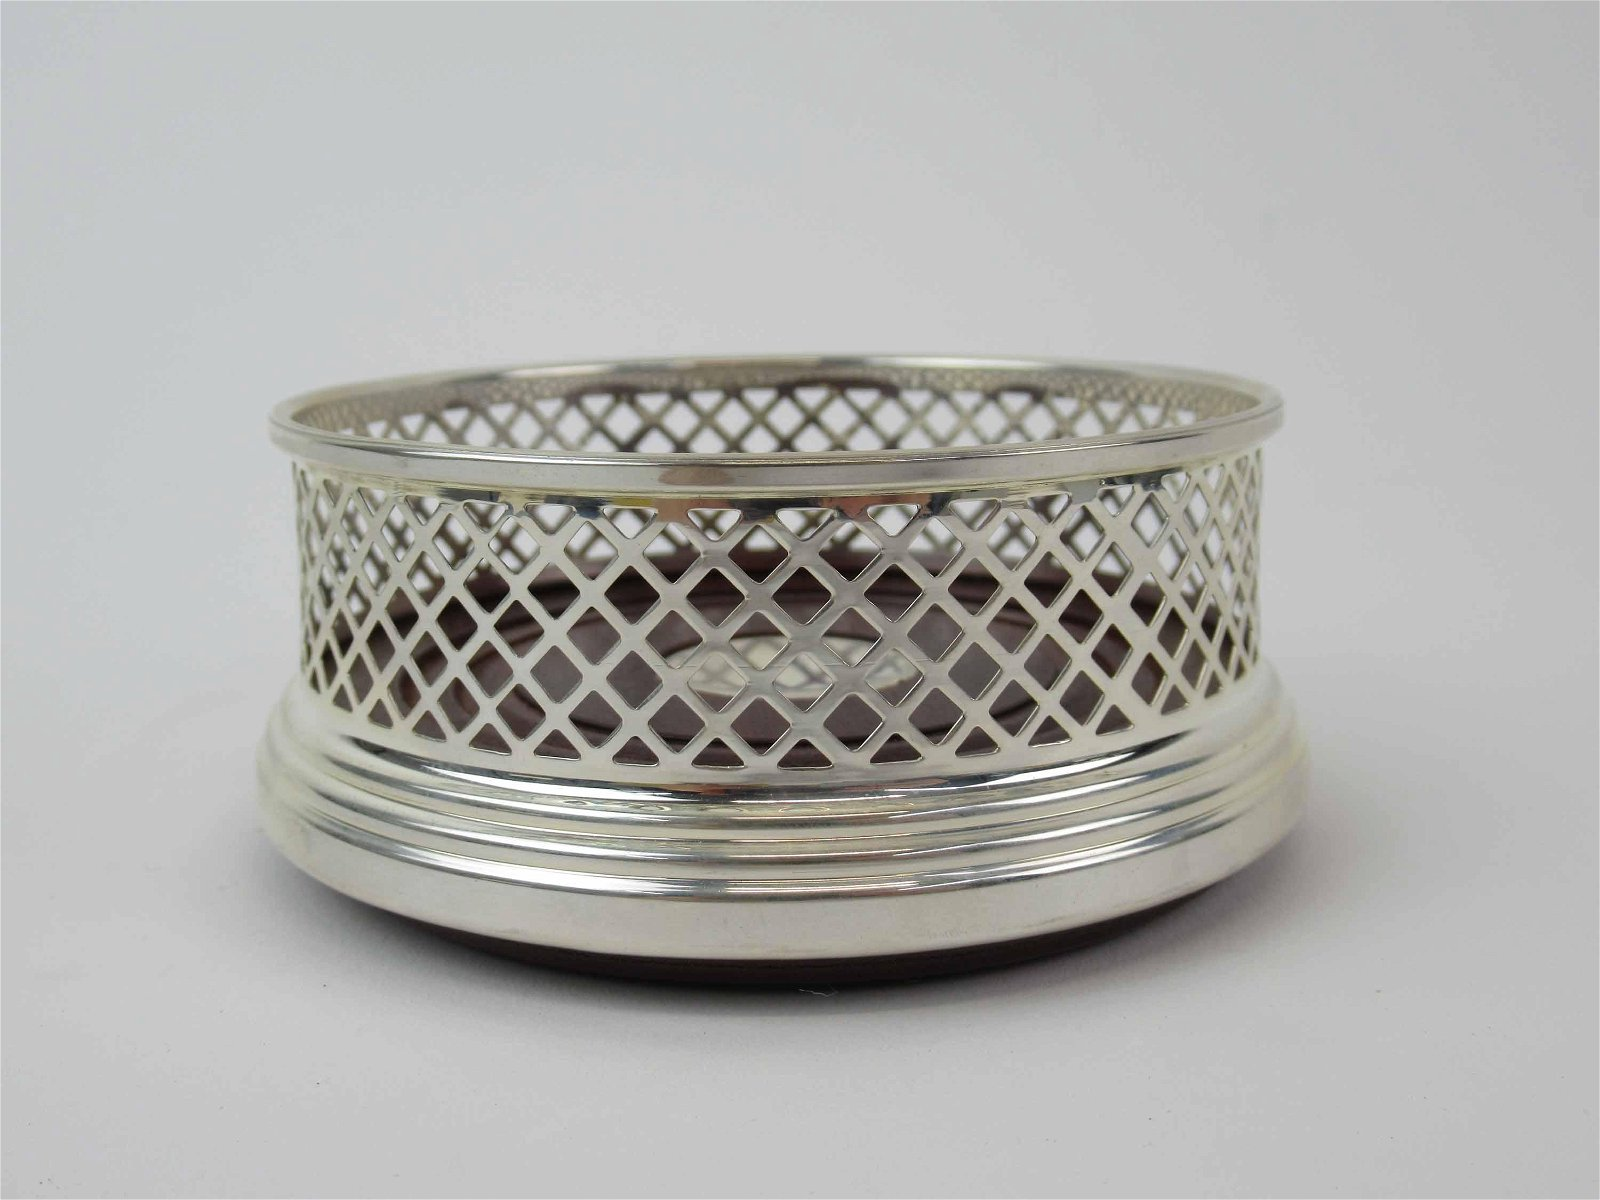 Broadway and Company Sterling Silver Bottle Caddy